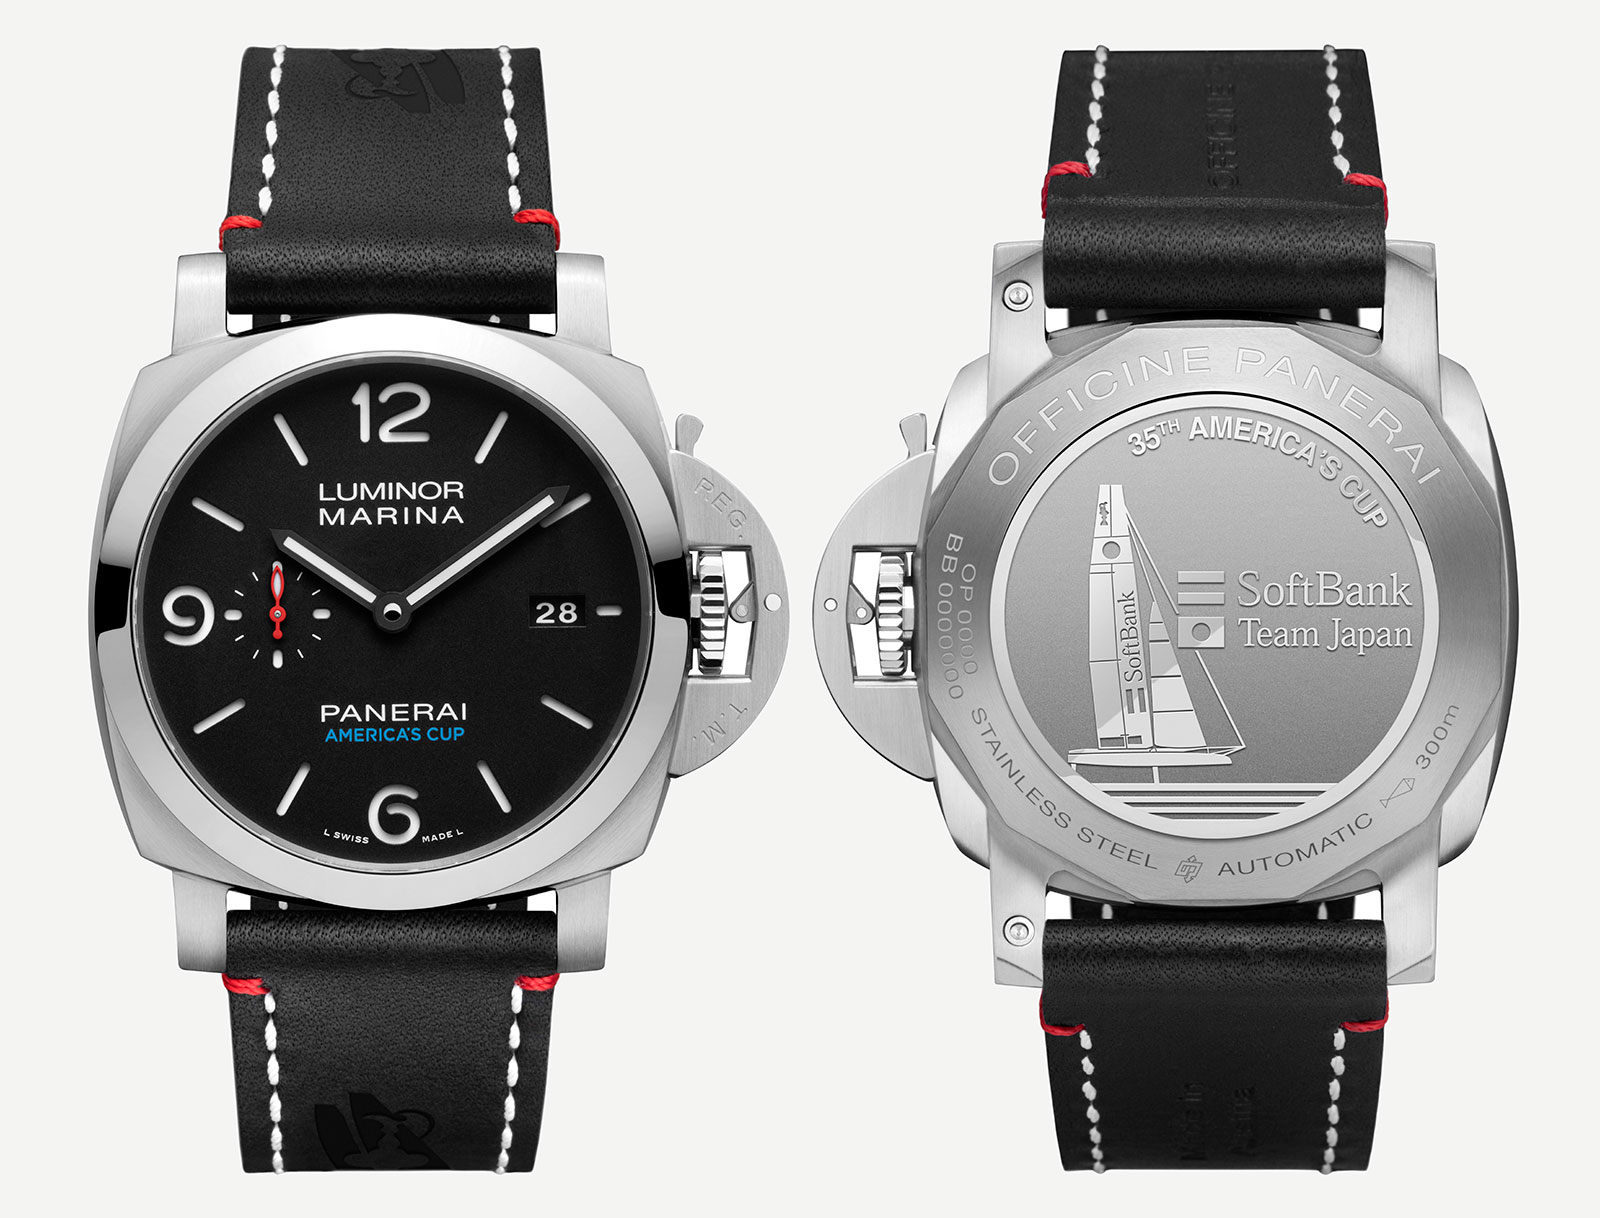 Panerai Luminor Marina 1950 SOFTBANK TEAM JAPAN PAM732